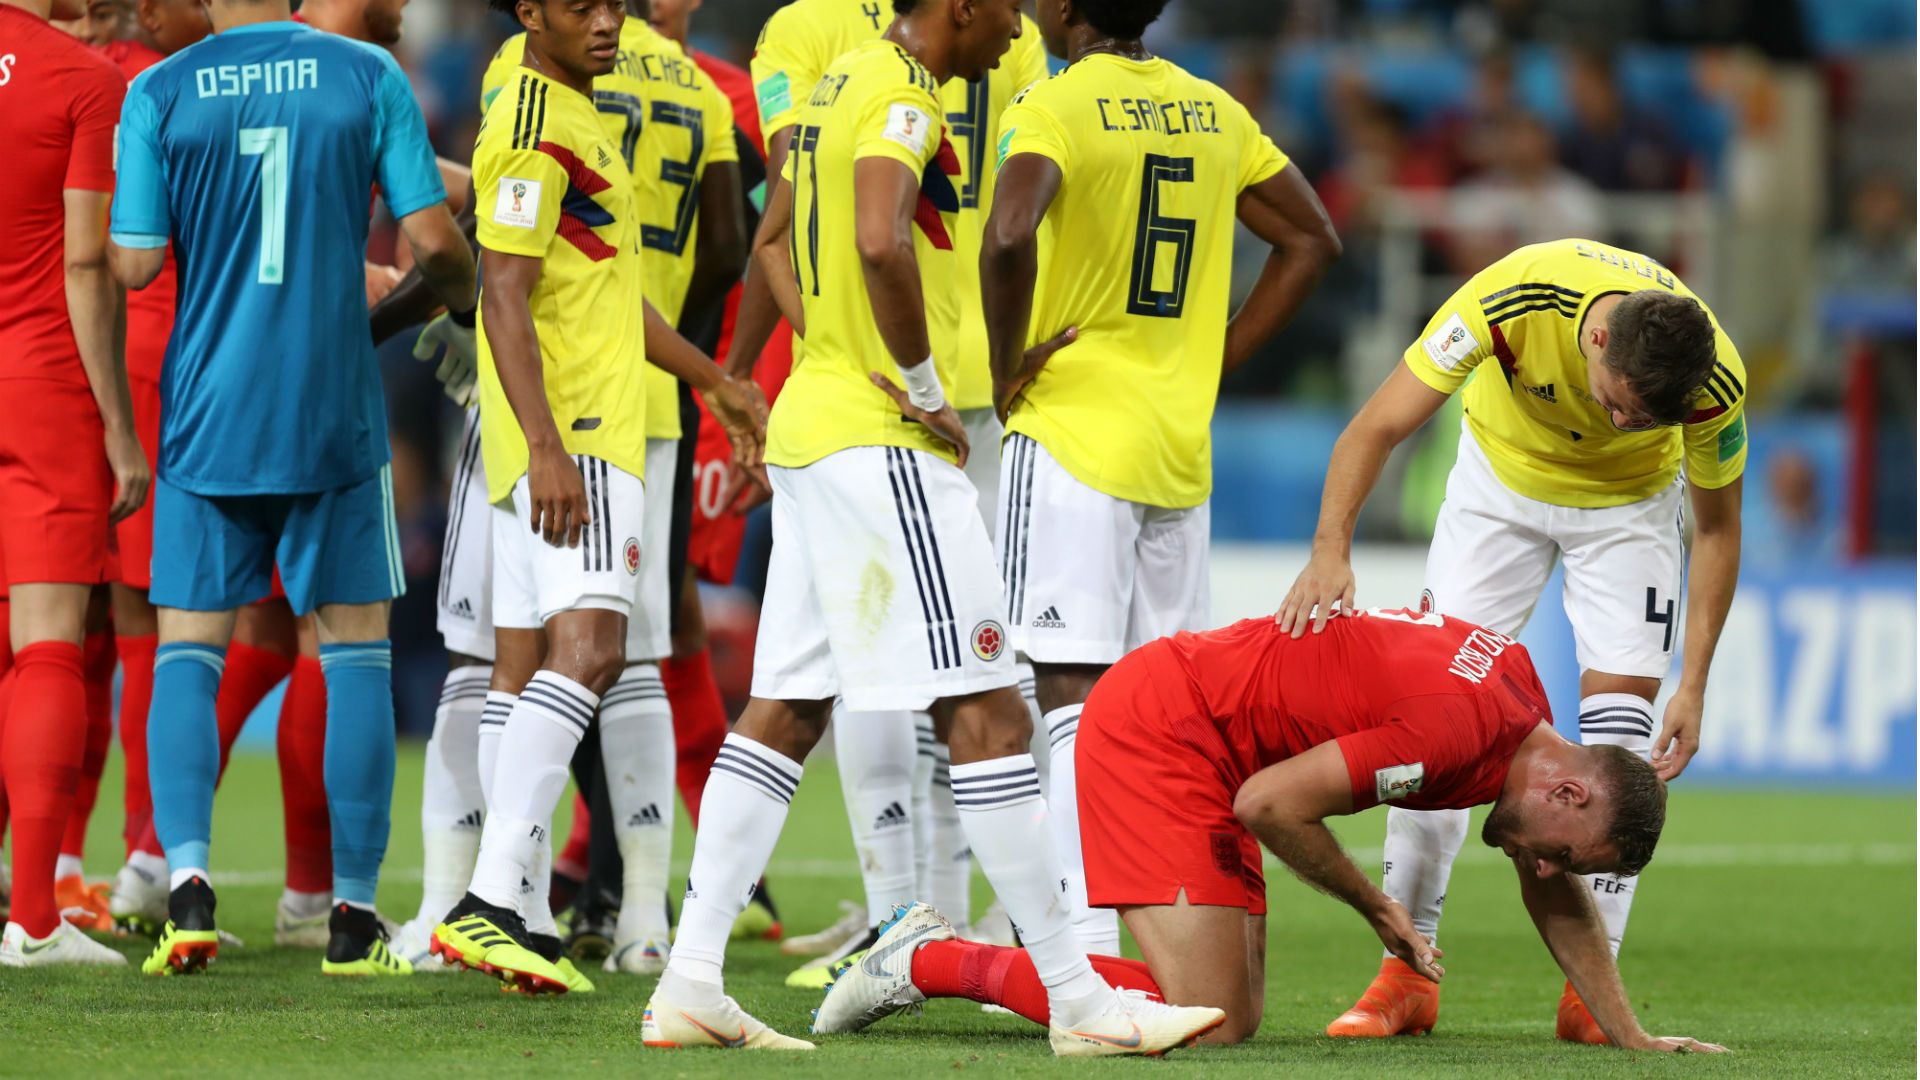 Gareth Southgate didn't take England penalty volunteers in shootout vs. Colombia